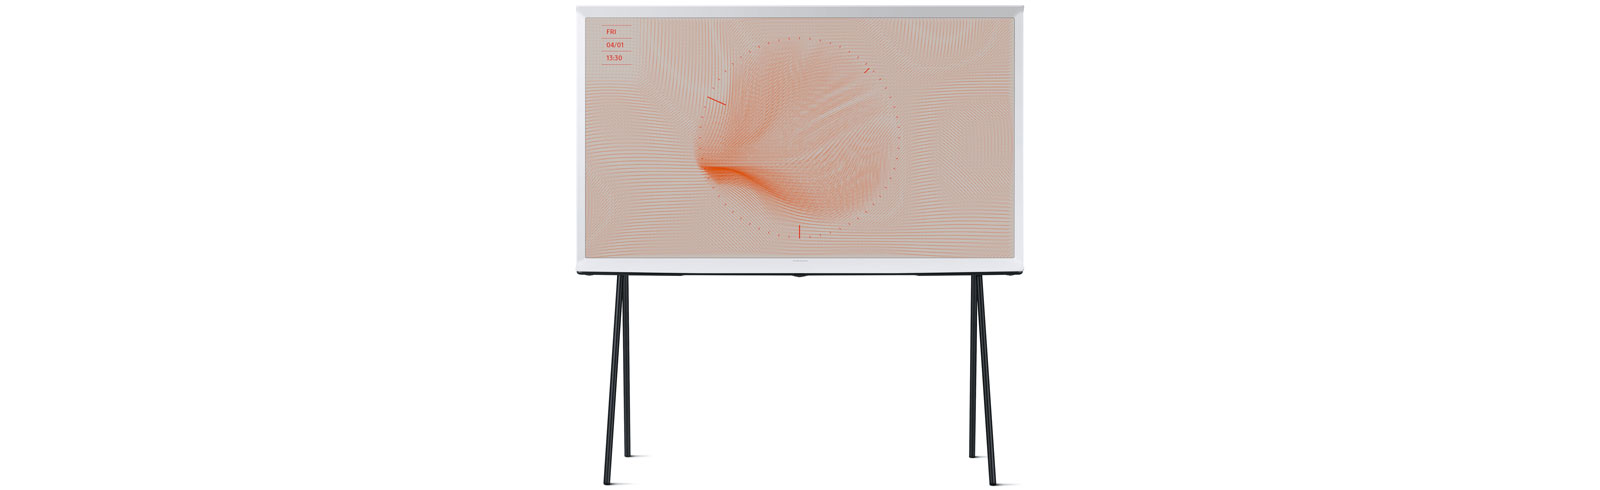 Samsung launches The Serif 2020 in 55-inch and 43-inch sizes - QE55LS01T and QE43LS01T